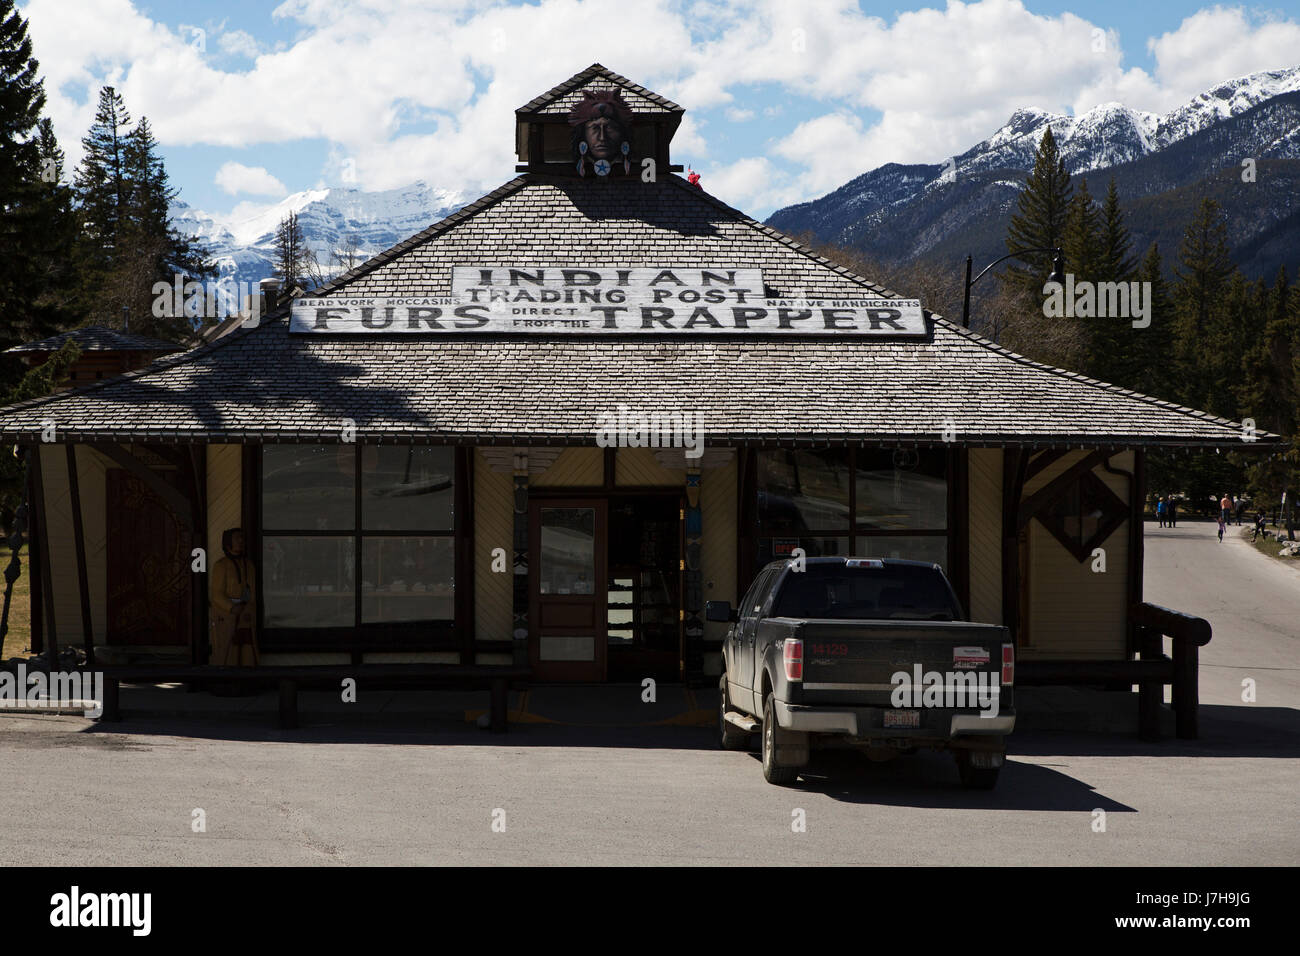 The Indian Trading Post in Banff, Canada. The store sells handicrafts and produce by First Nations peoples. - Stock Image